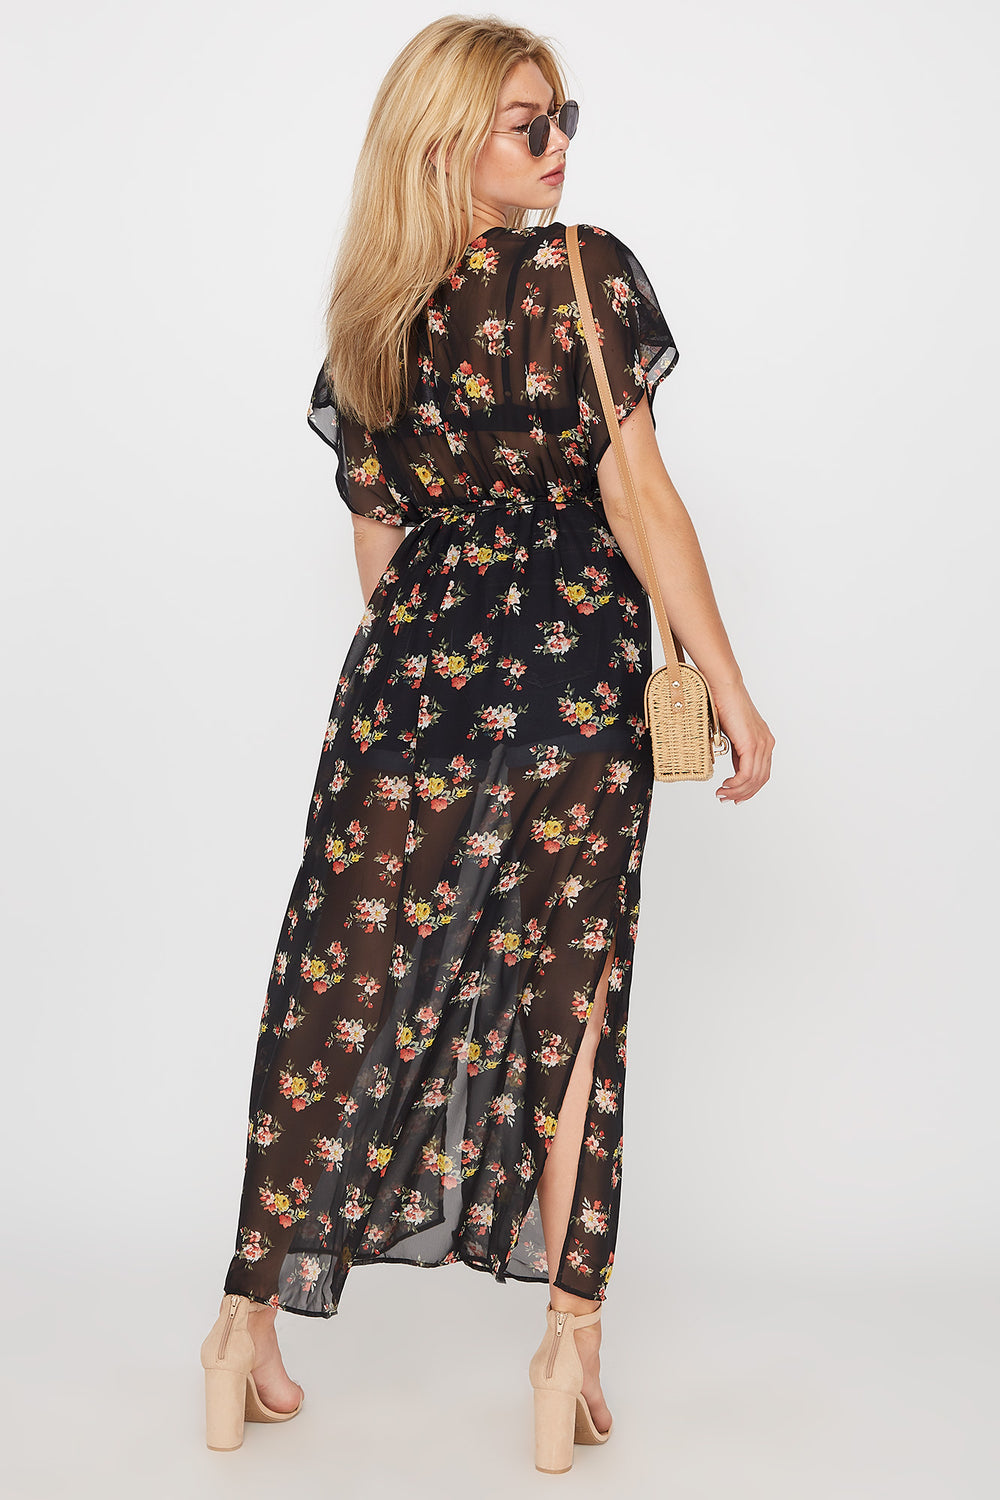 Sheer Floral Self-Tie Longline Side Slit Kimono Black